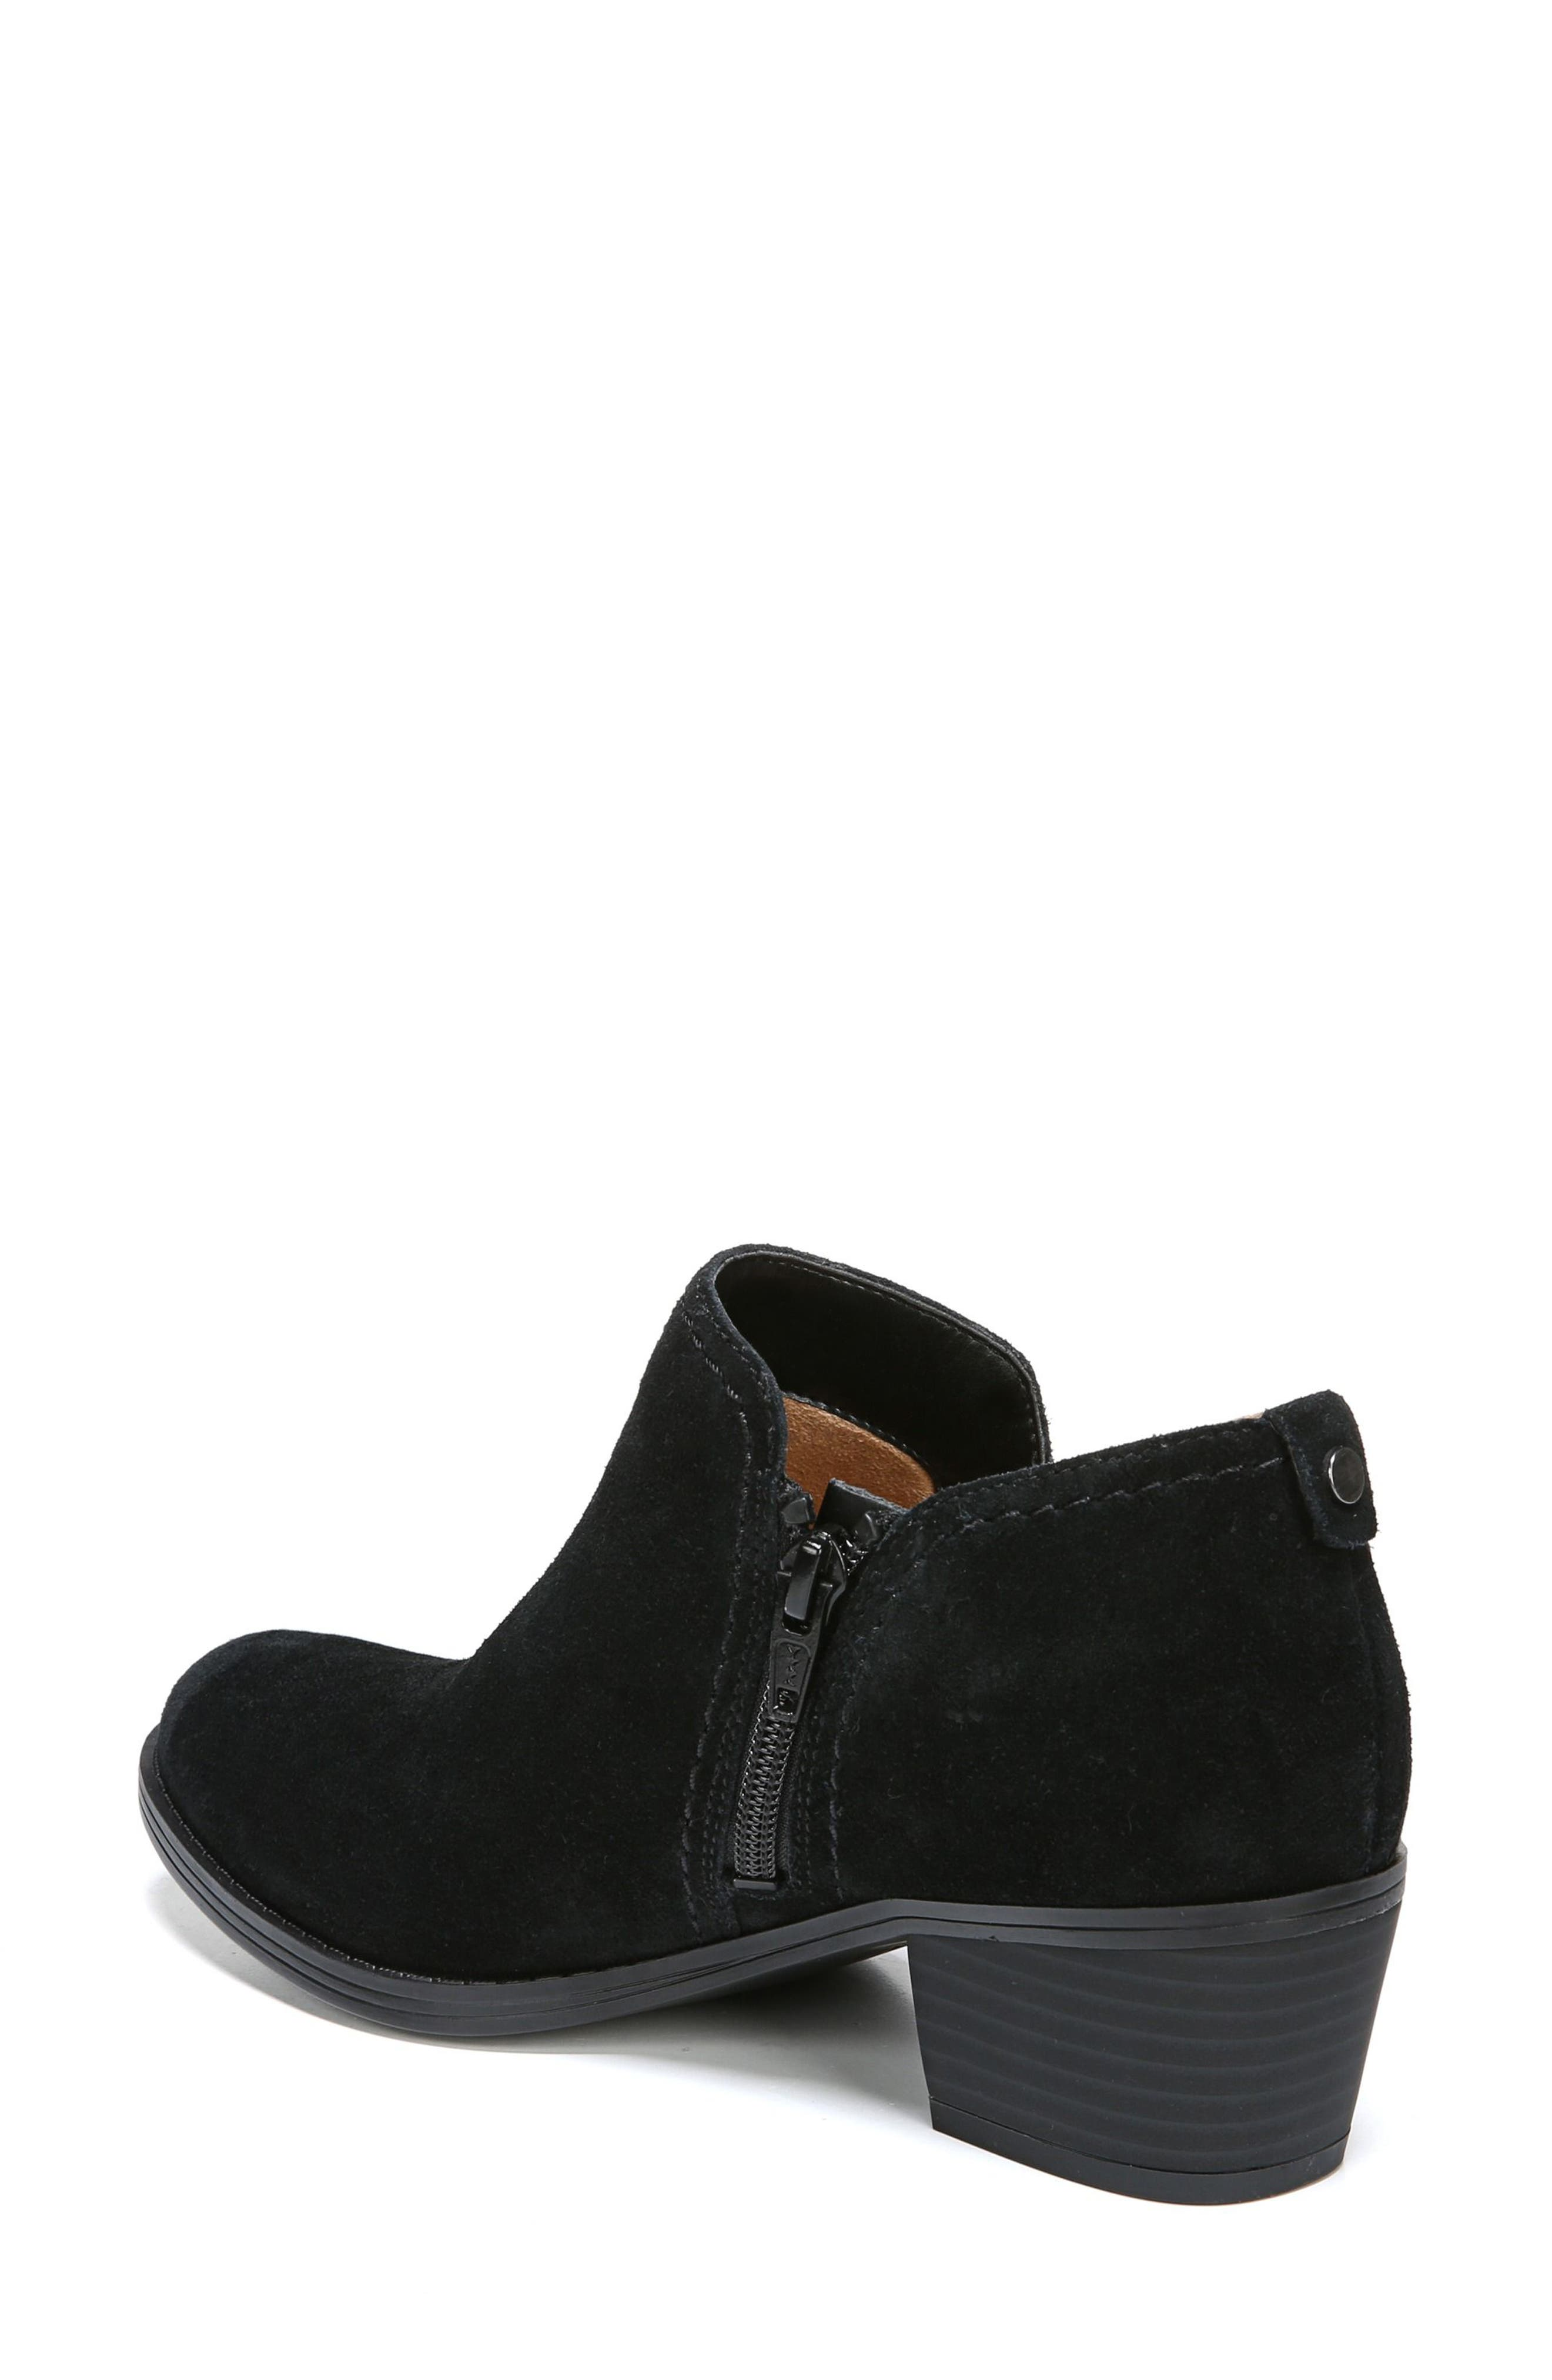 'Zarie' Block Heel Bootie,                             Alternate thumbnail 2, color,                             Black Suede